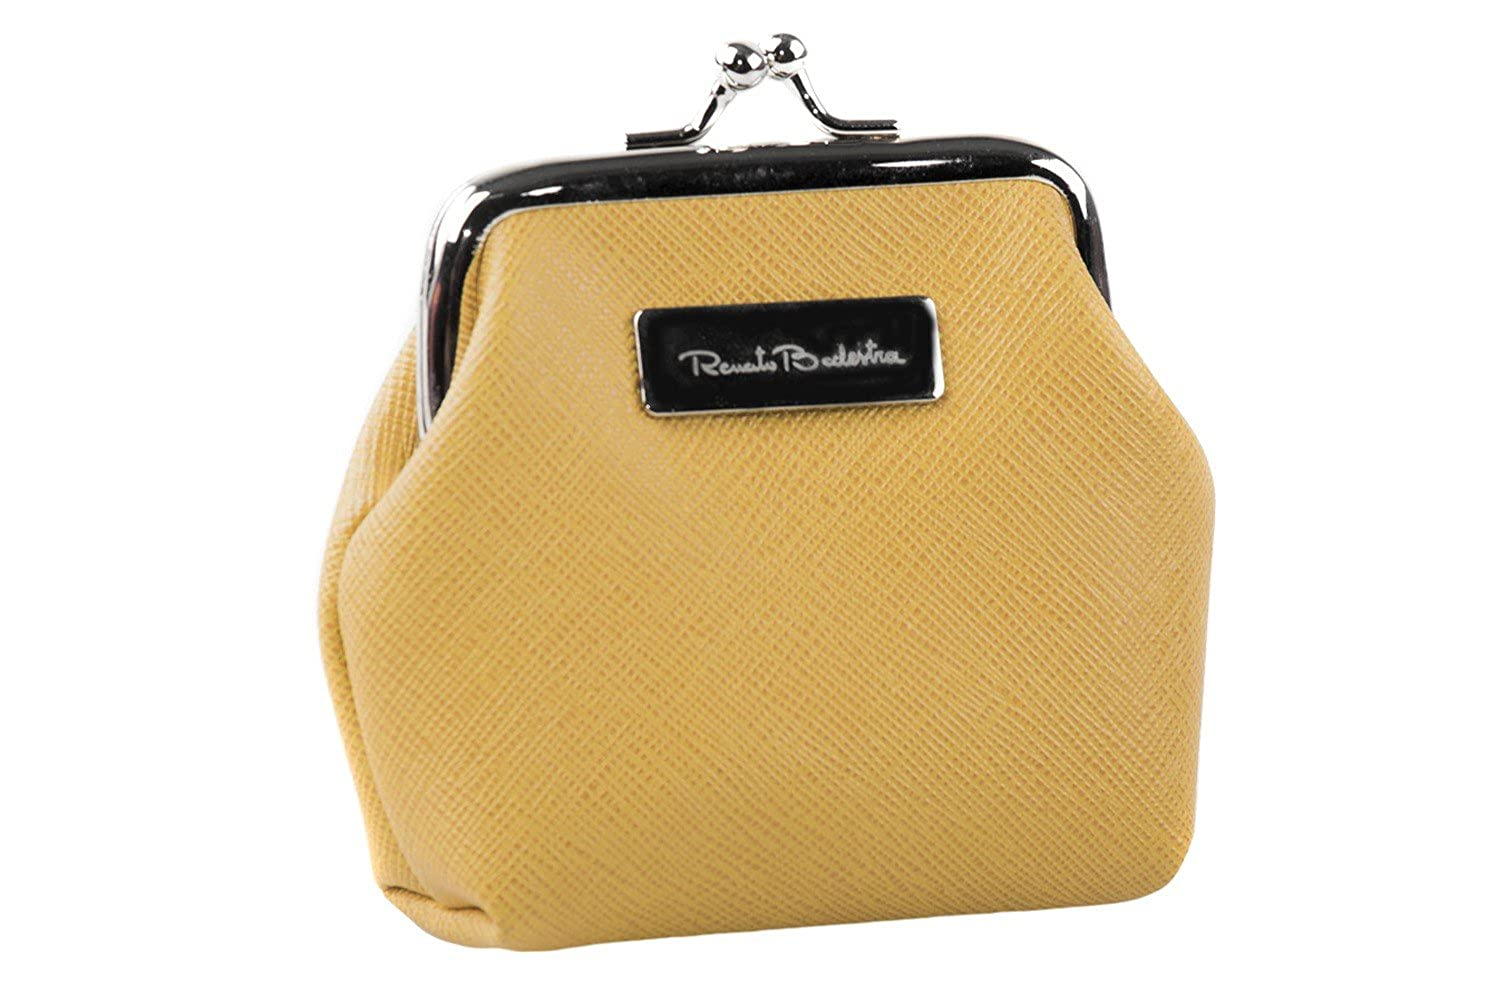 Coin purse keychain one ring RENATO BALESTRA yellow ocher box package P34